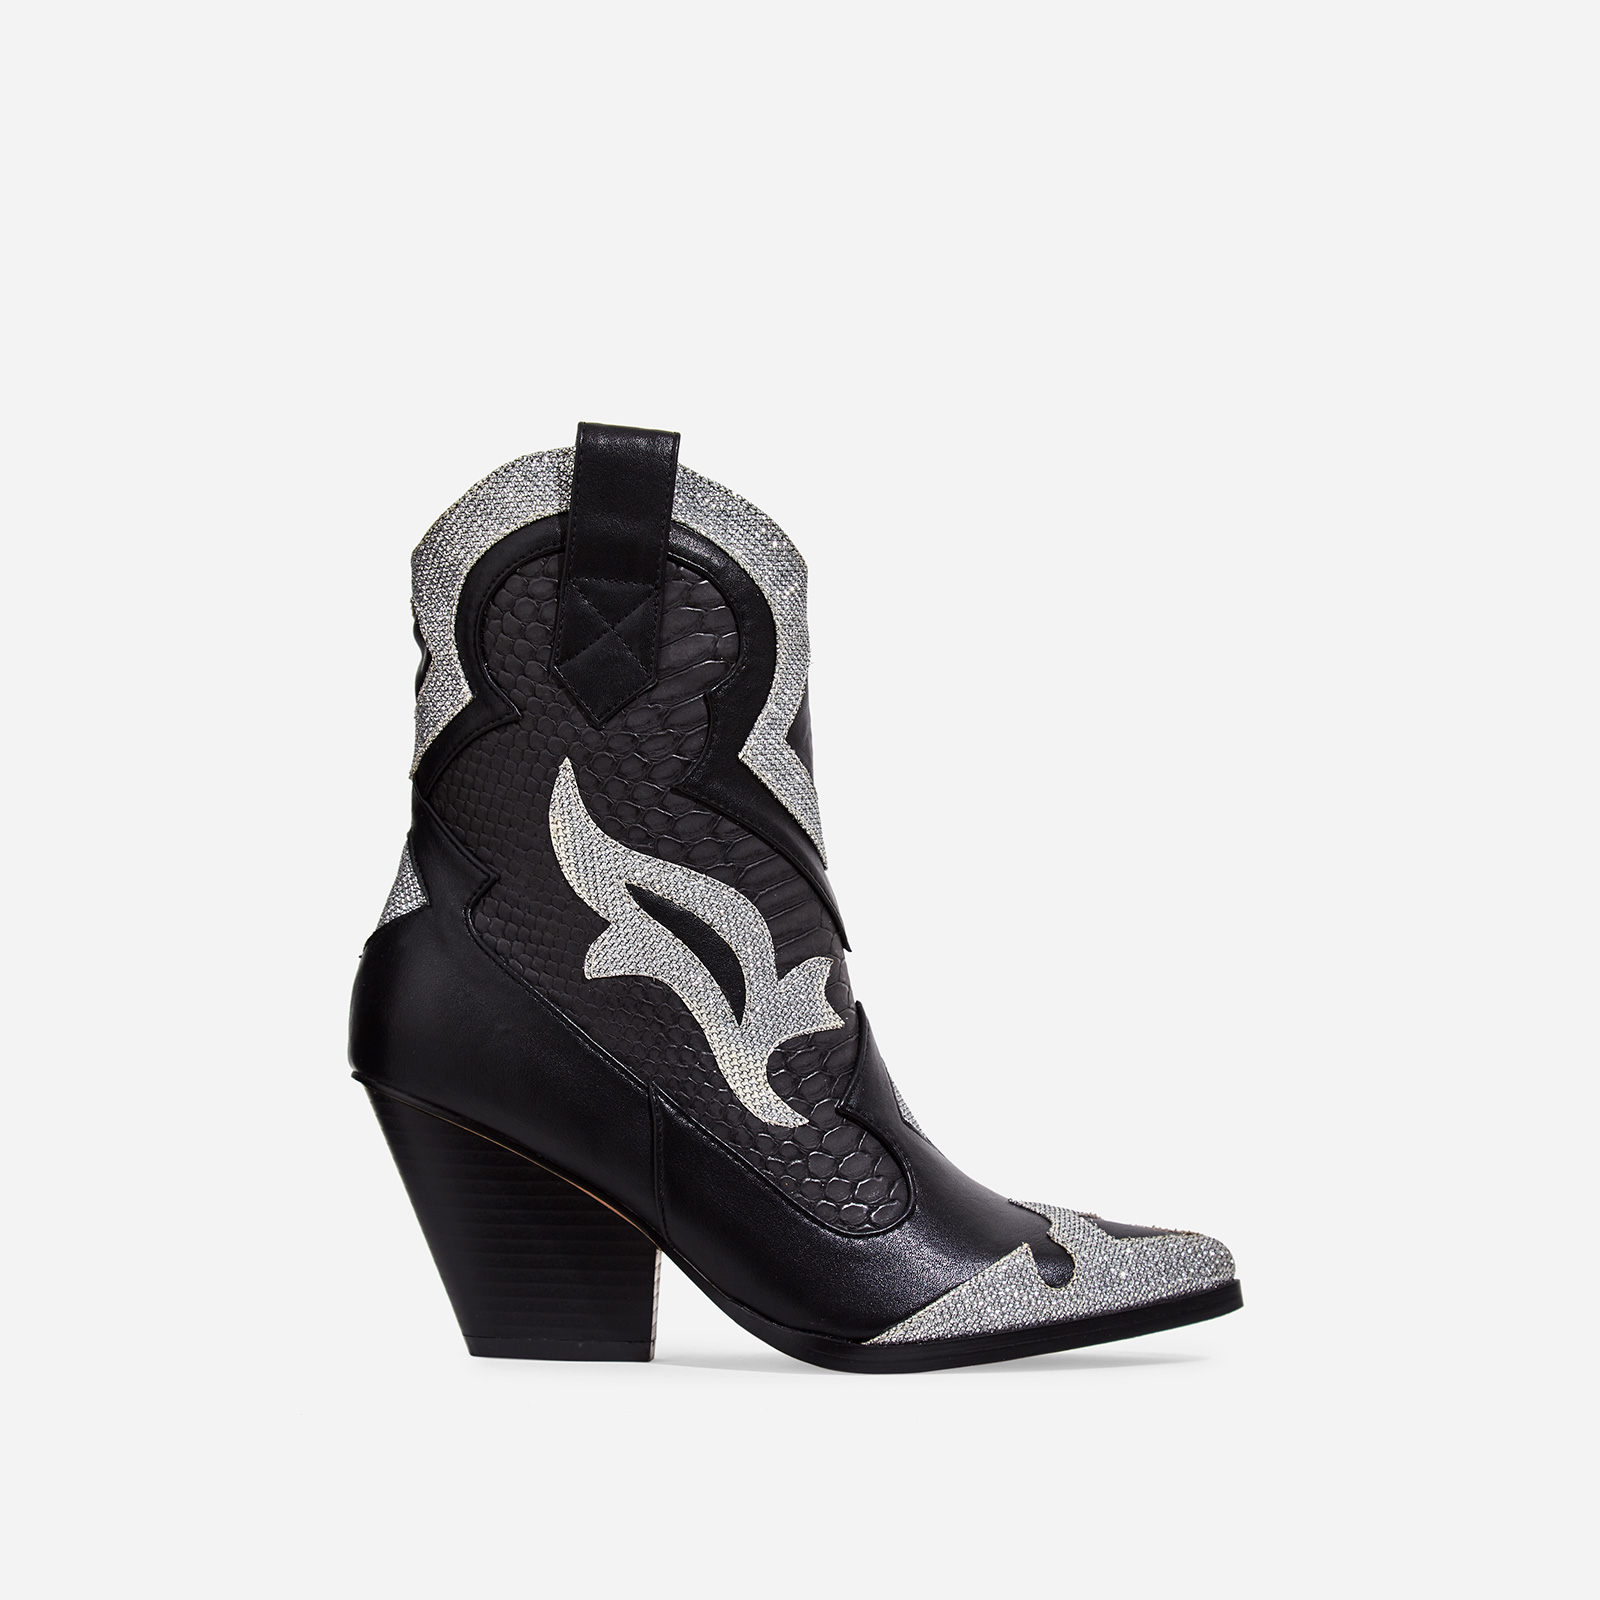 Mixer Rhinestone Snake Print Detail Western Ankle Boot In Black Faux Leather